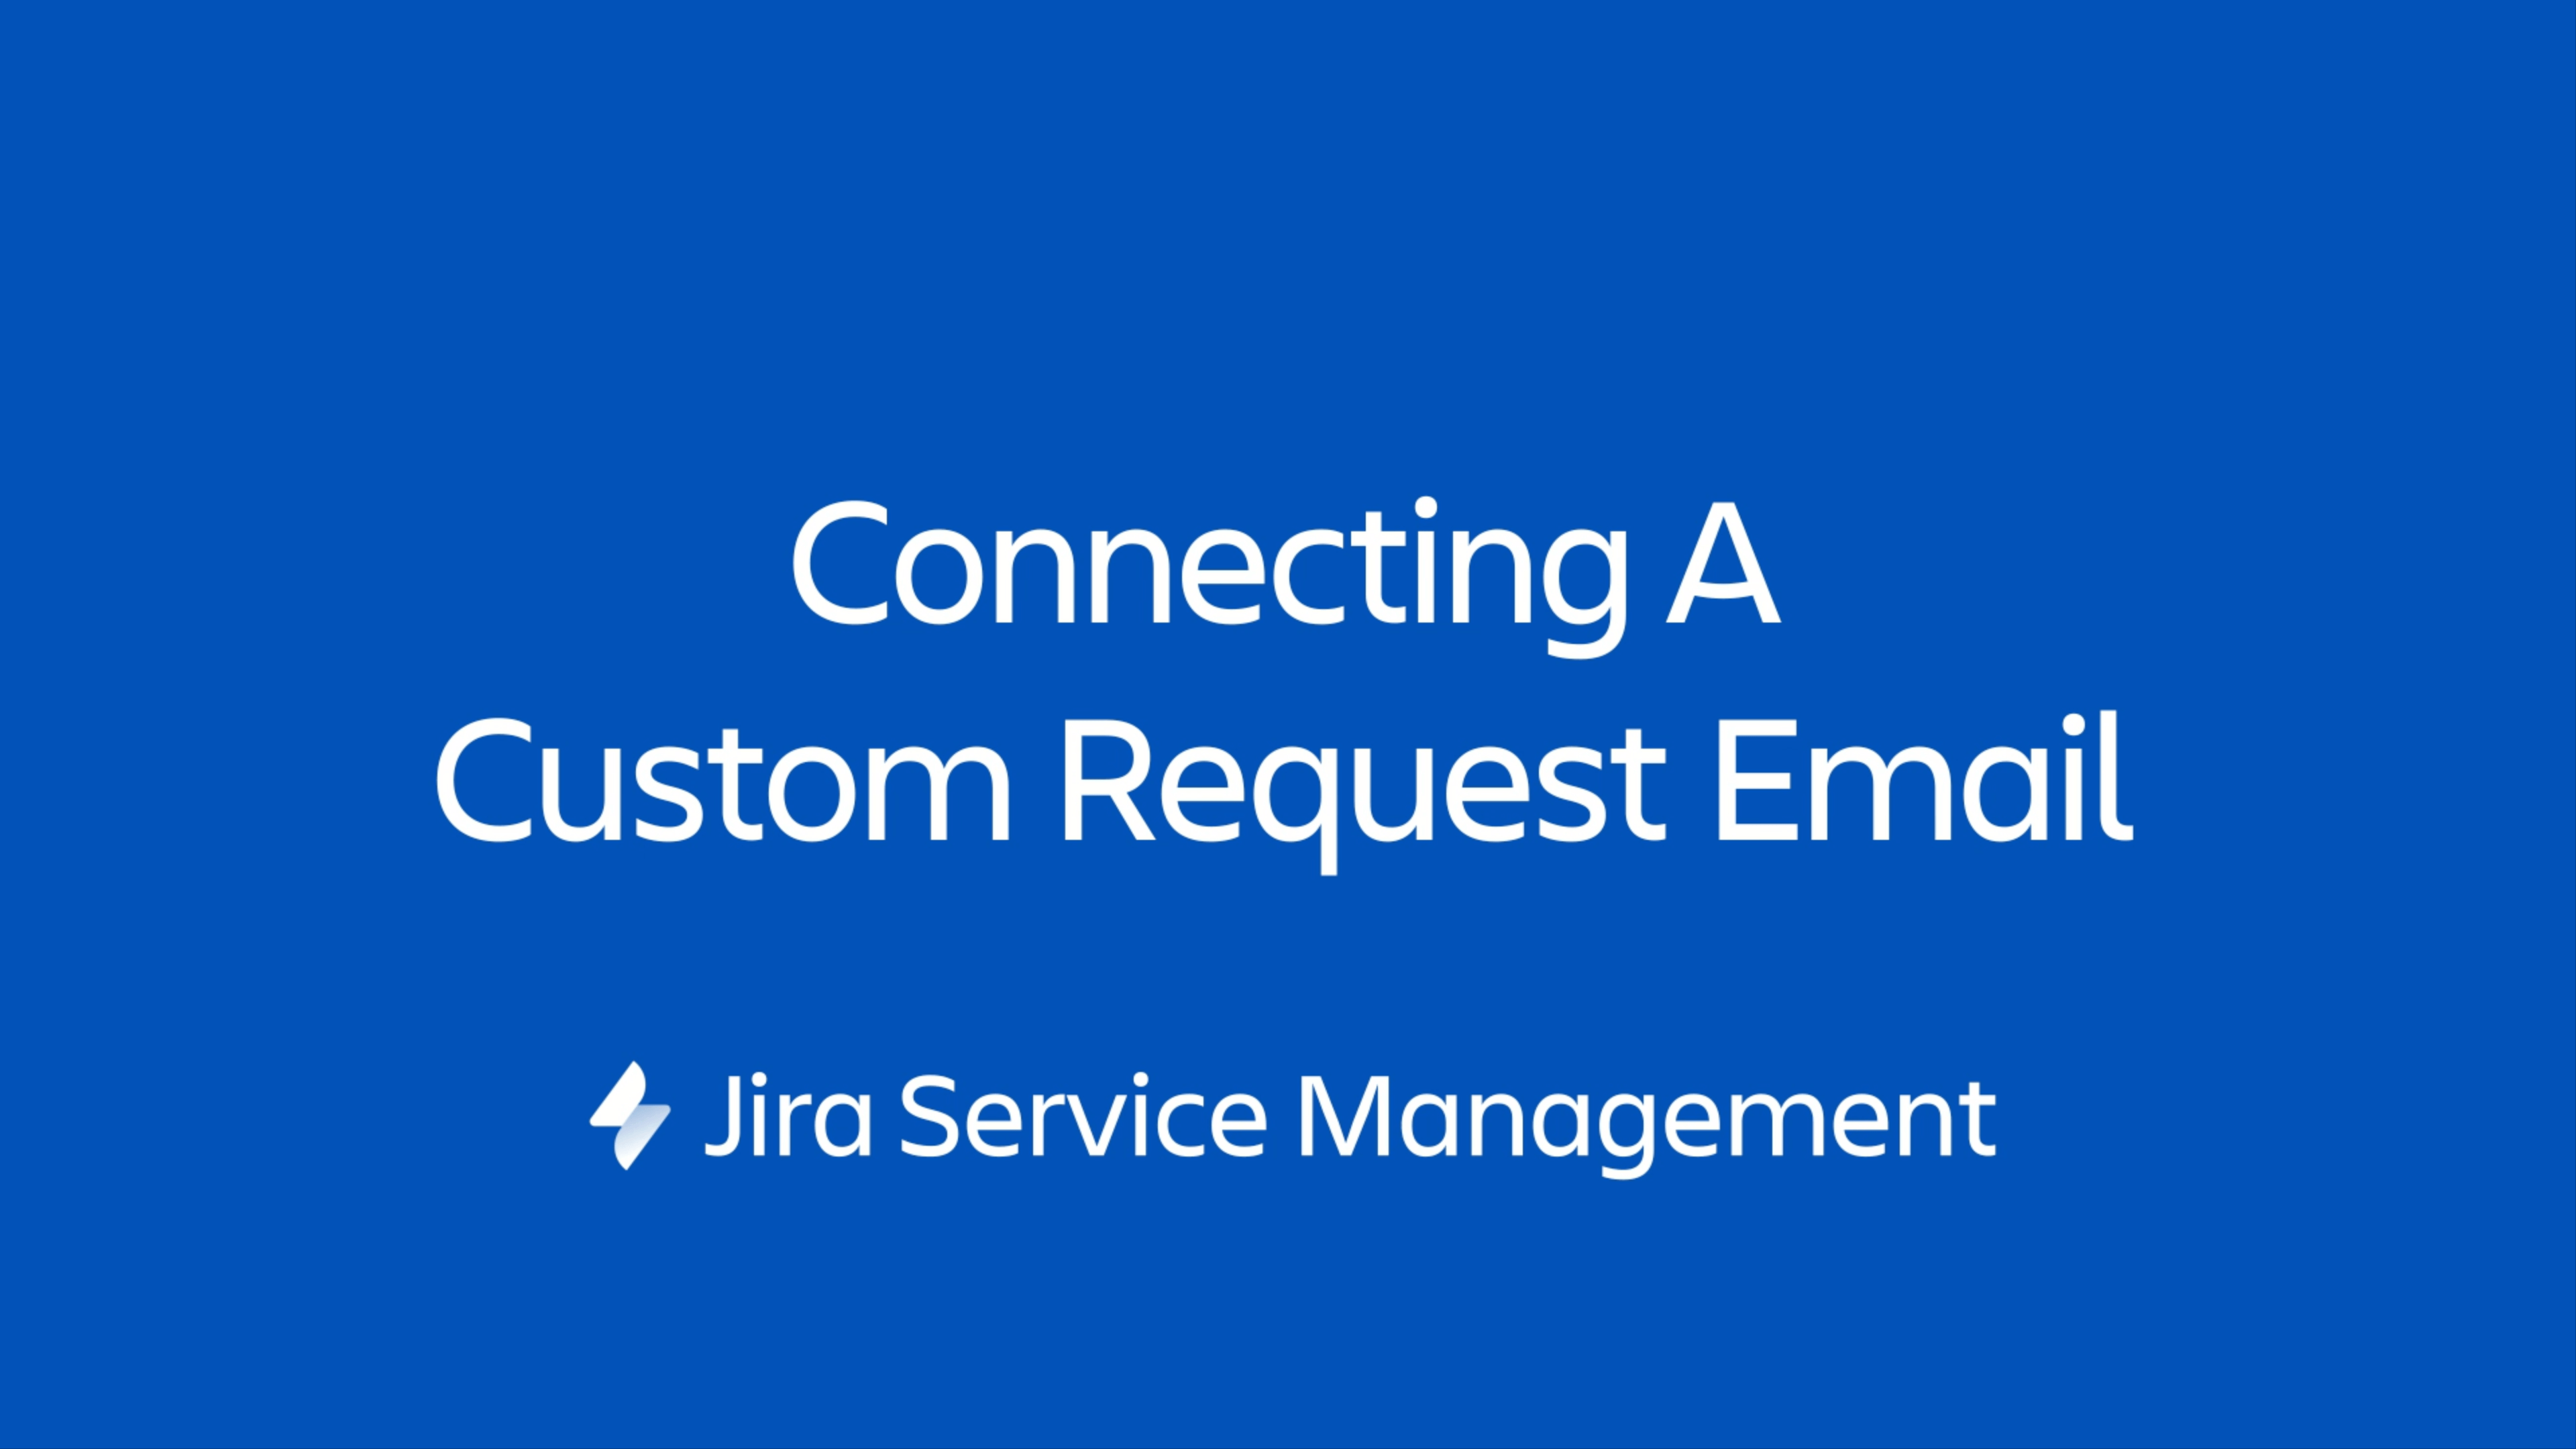 Connecting a custom request email